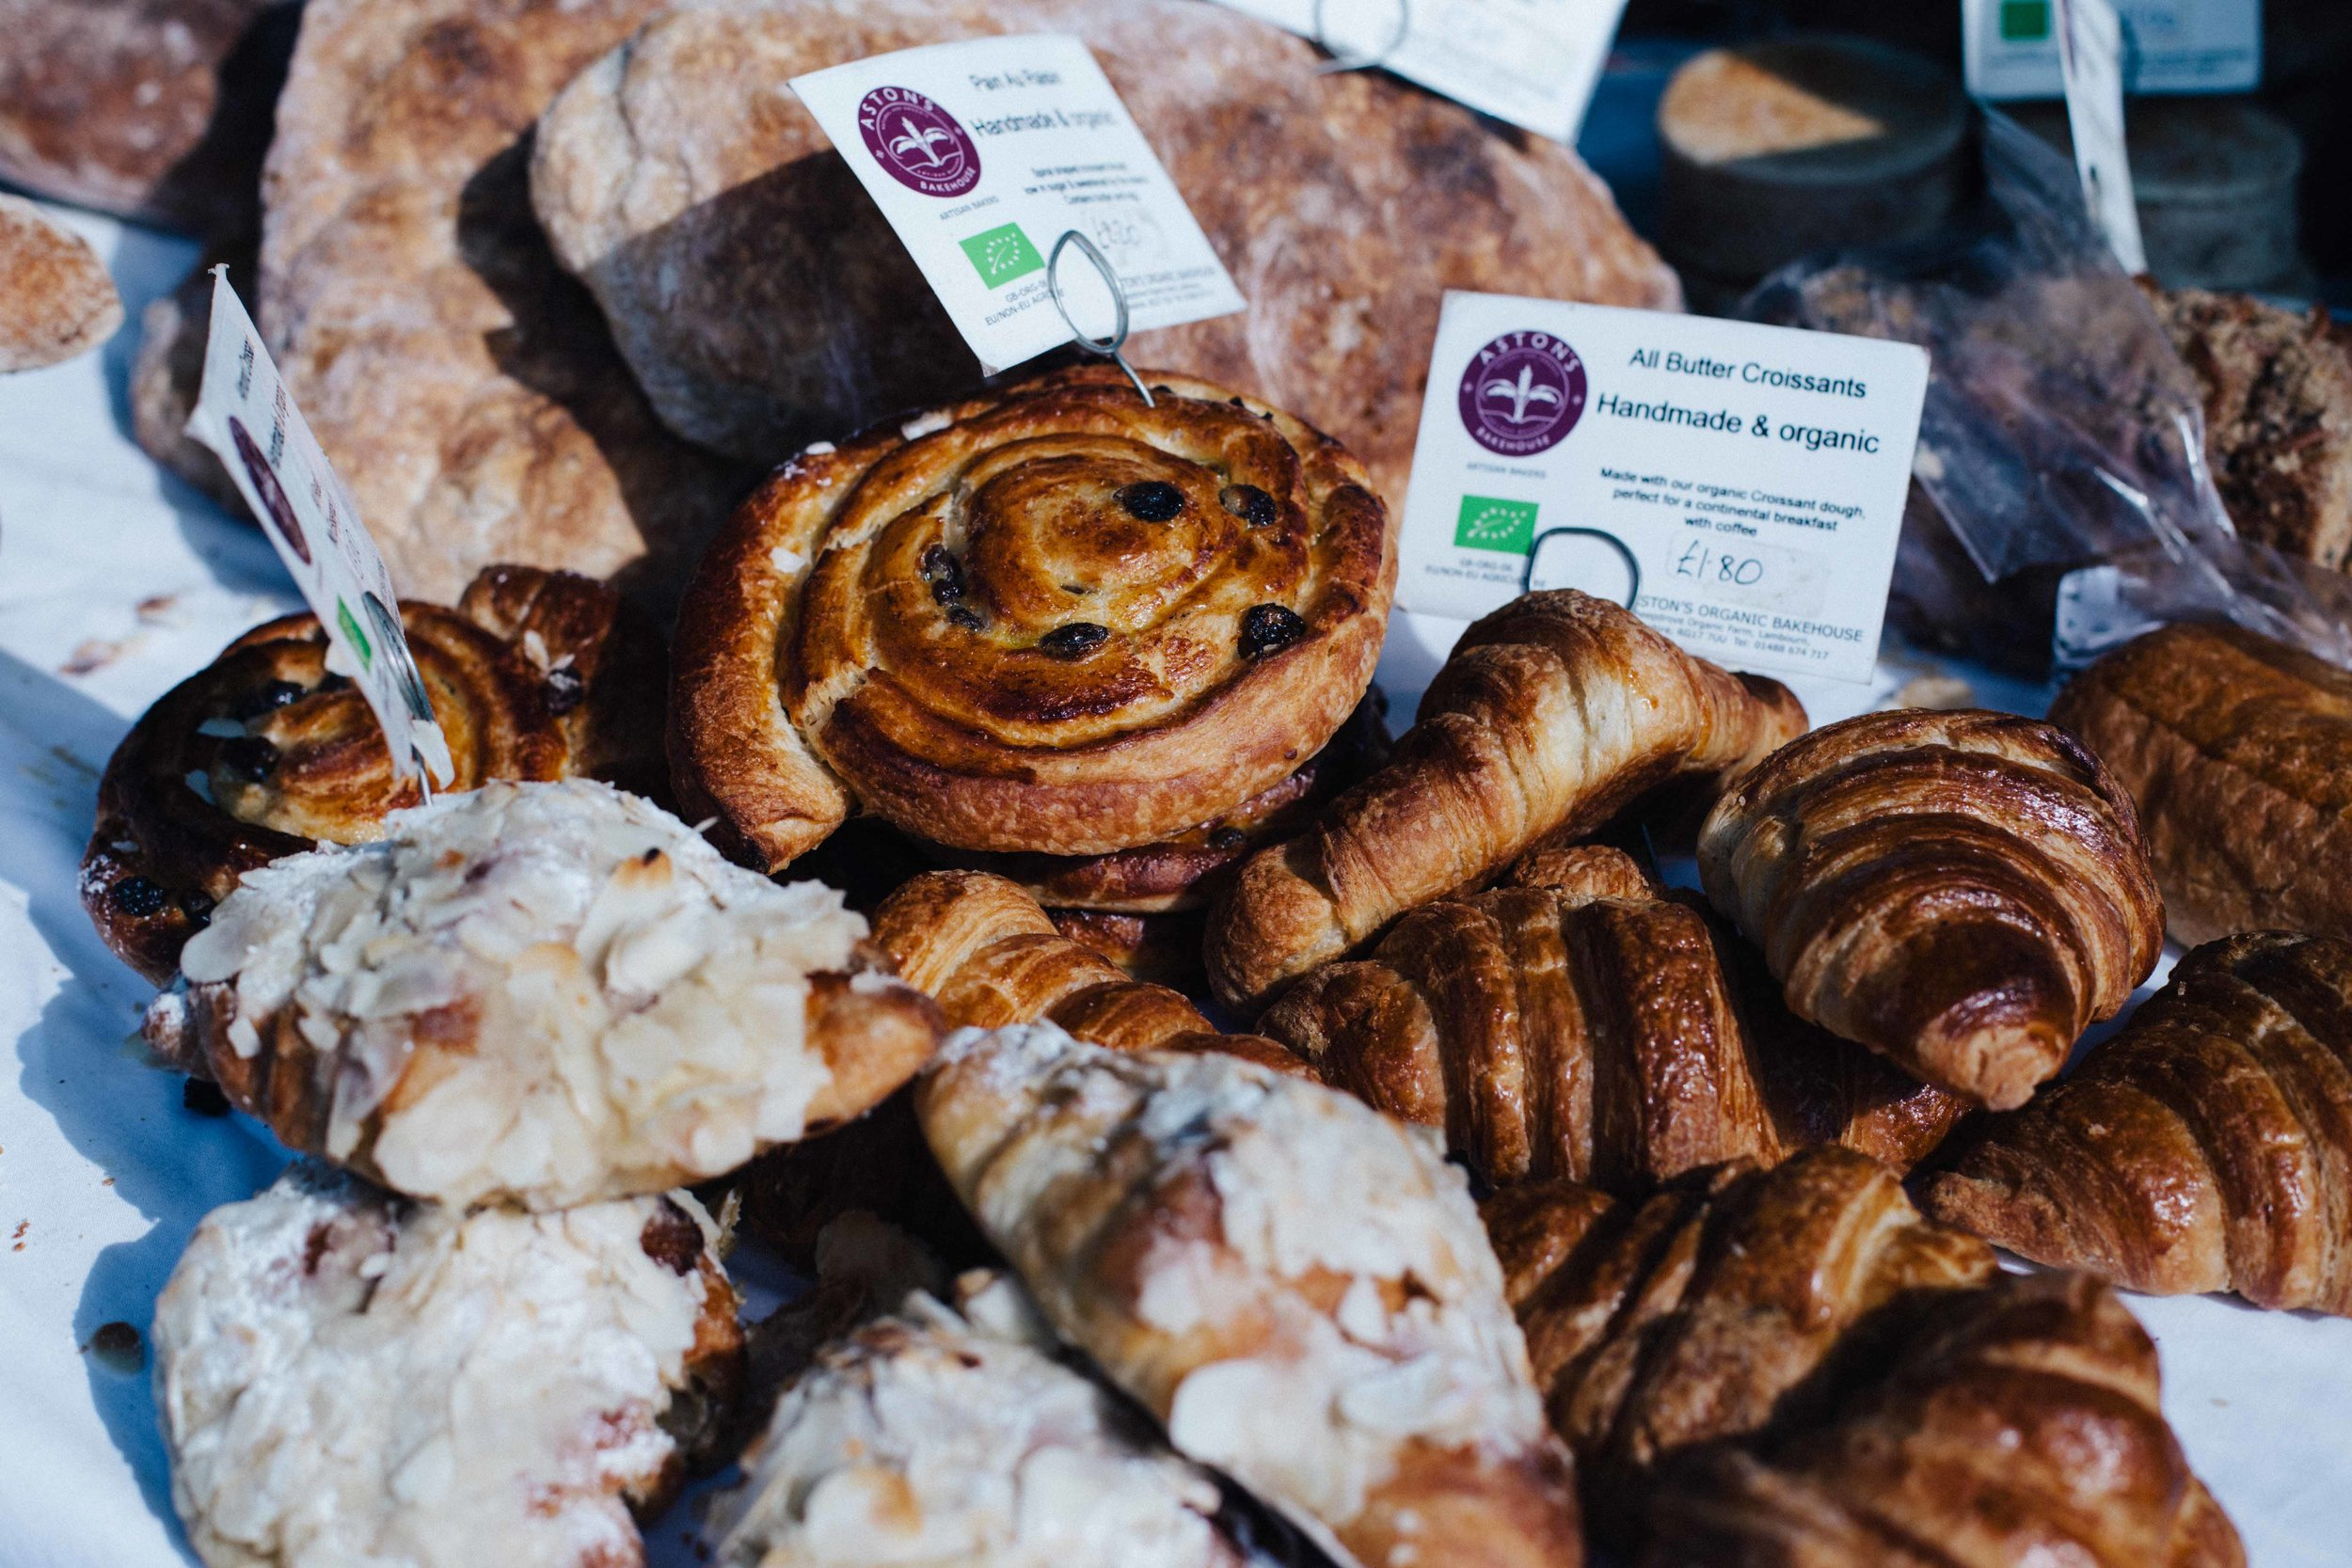 After this tropical heat, we headed to the Saturday's food market with suppliers of fresh and homemade produces: - we couldn't resist the compotes, the falafel stand, fresh bread and croissants and we sat in the sunshine eating our lunch, like real Southerners do.